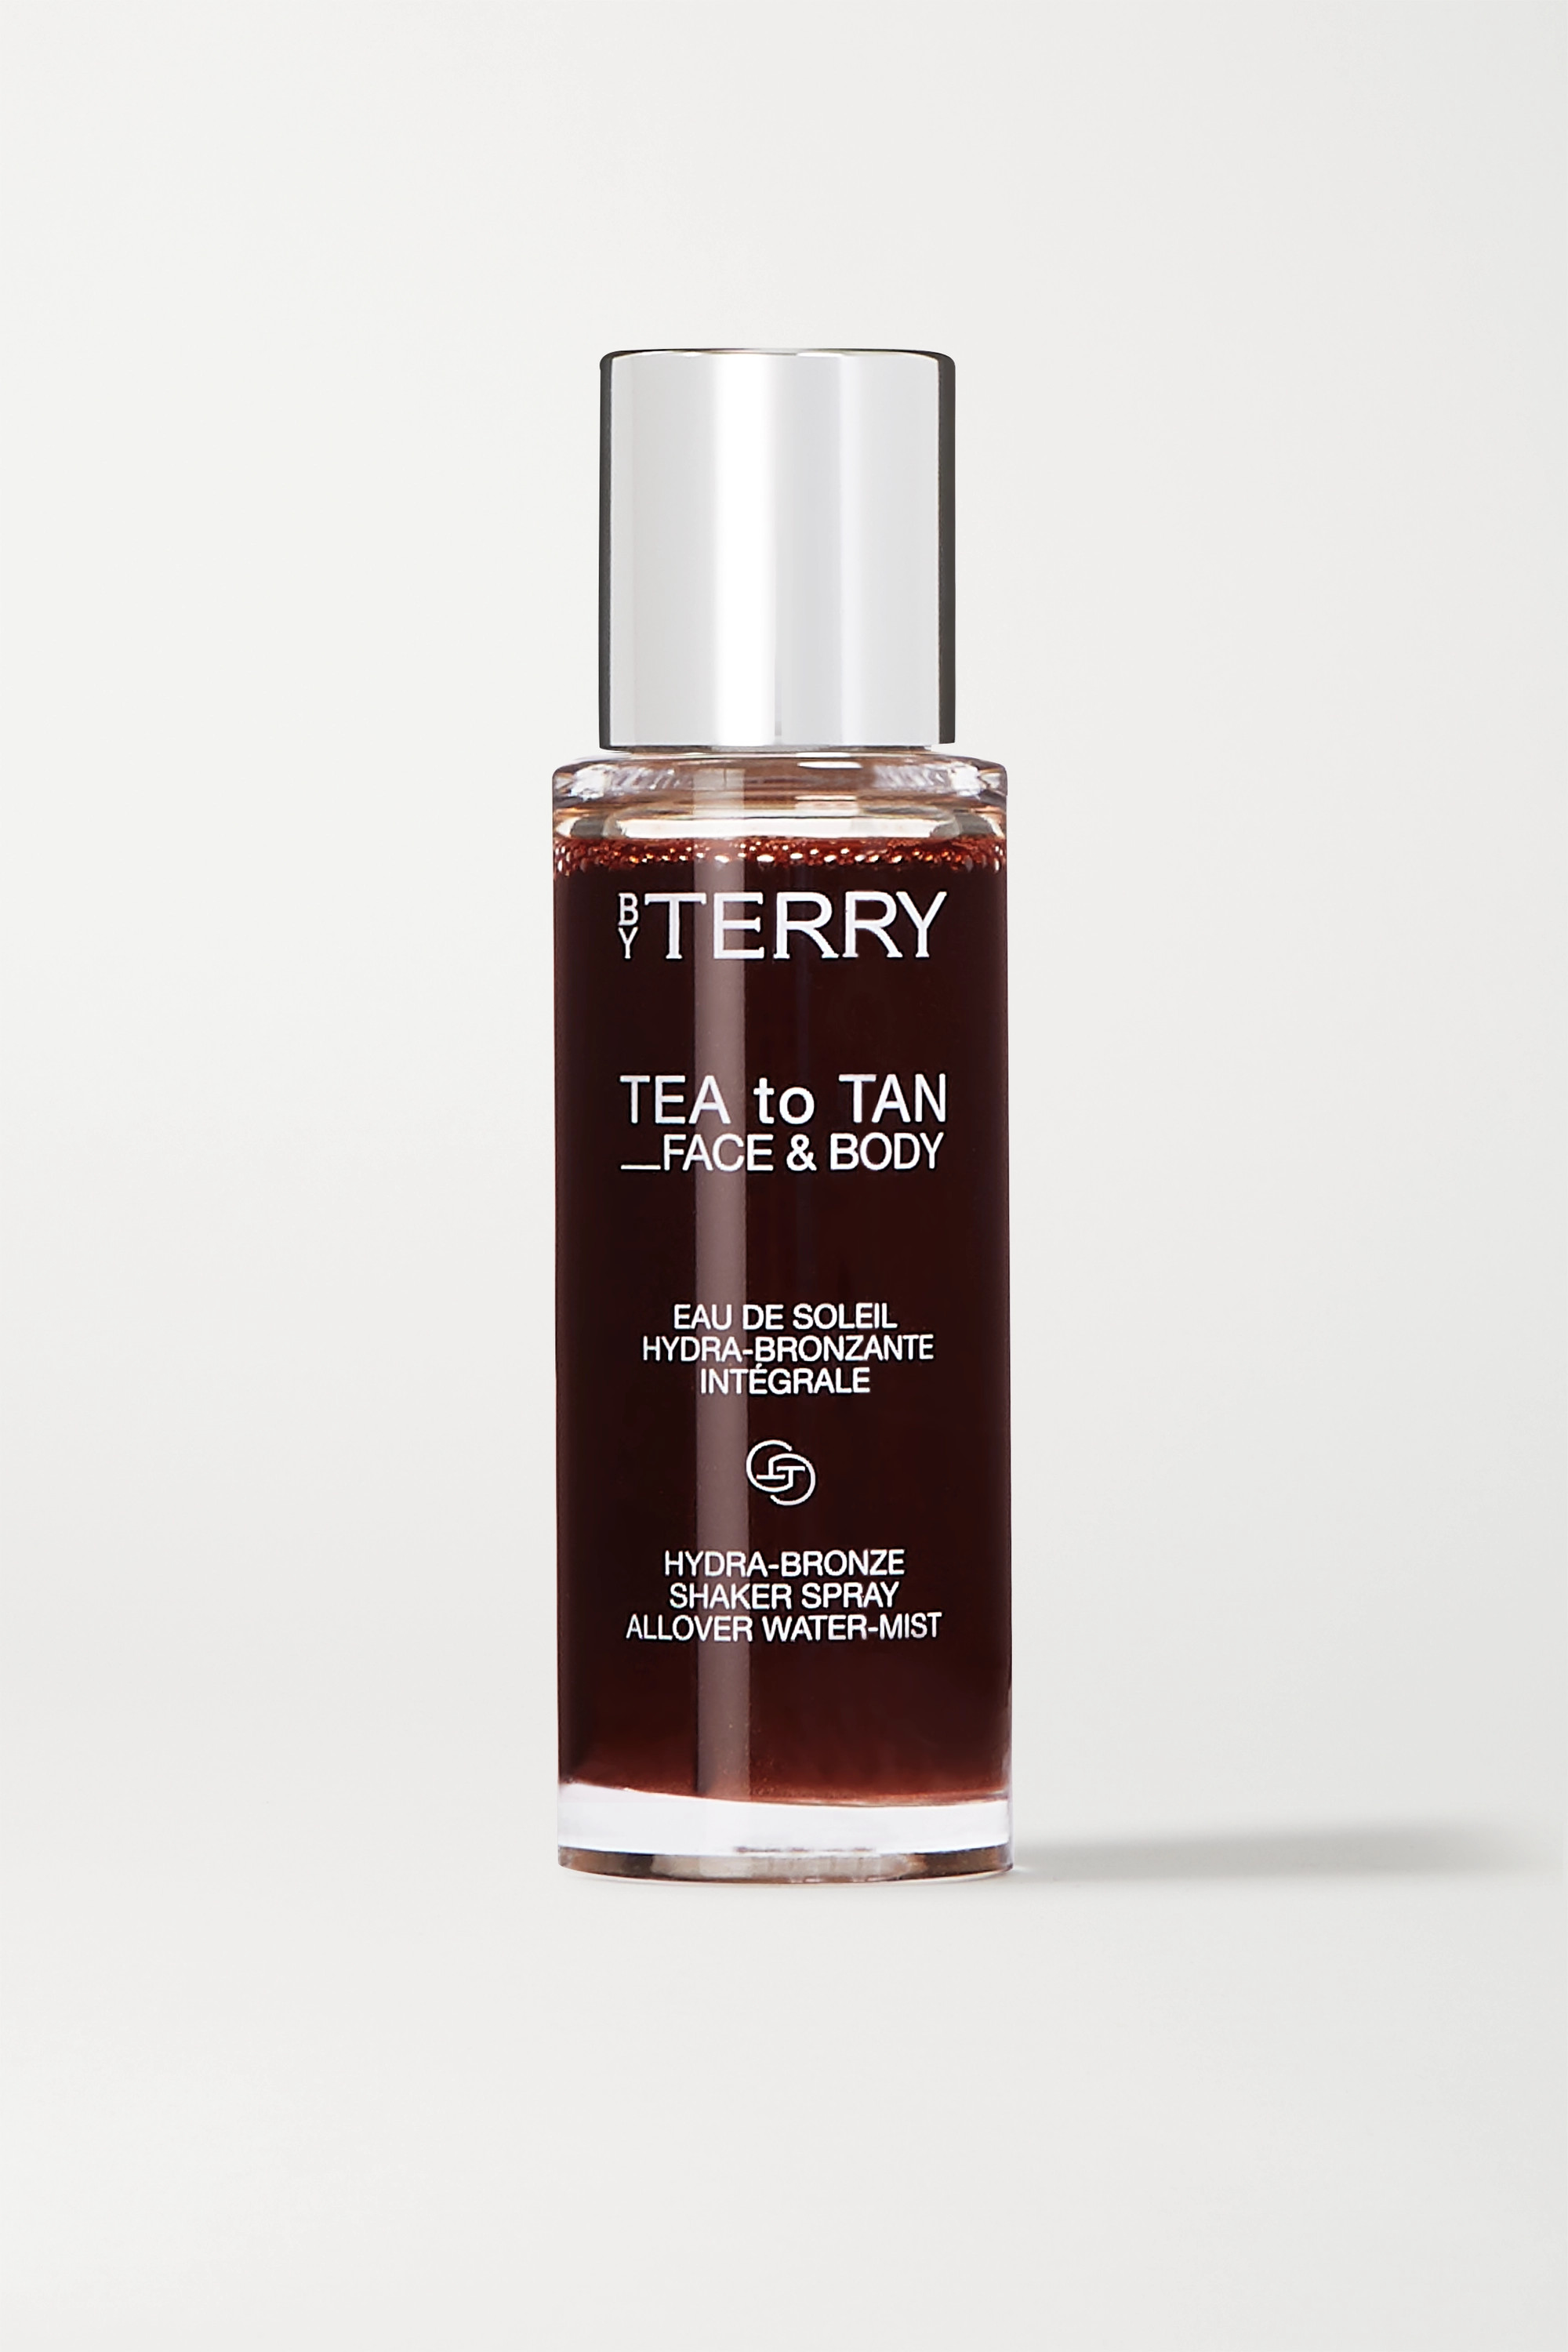 BY TERRY Tea To Tan Face & Body - 1 Summer Bronze, 30ml